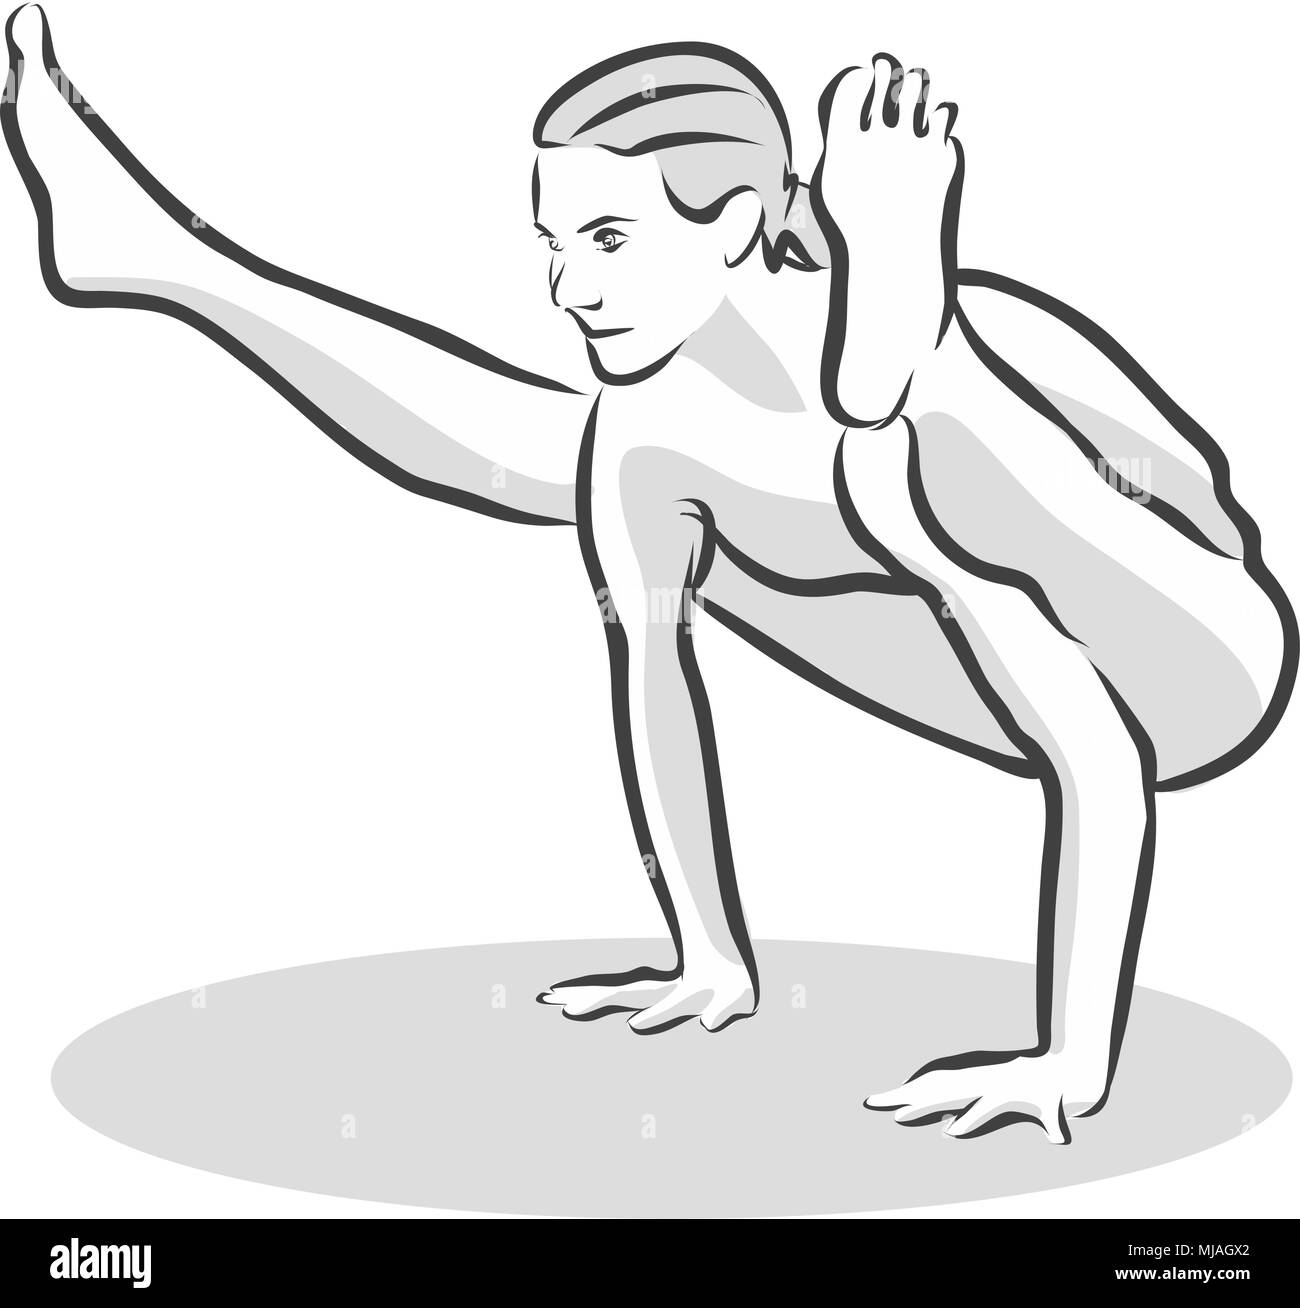 Old Black Crow Creepy Crawly Tittibhasana Yoga Pose, Free Hand drawn vector halftone Sketch - Stock Image